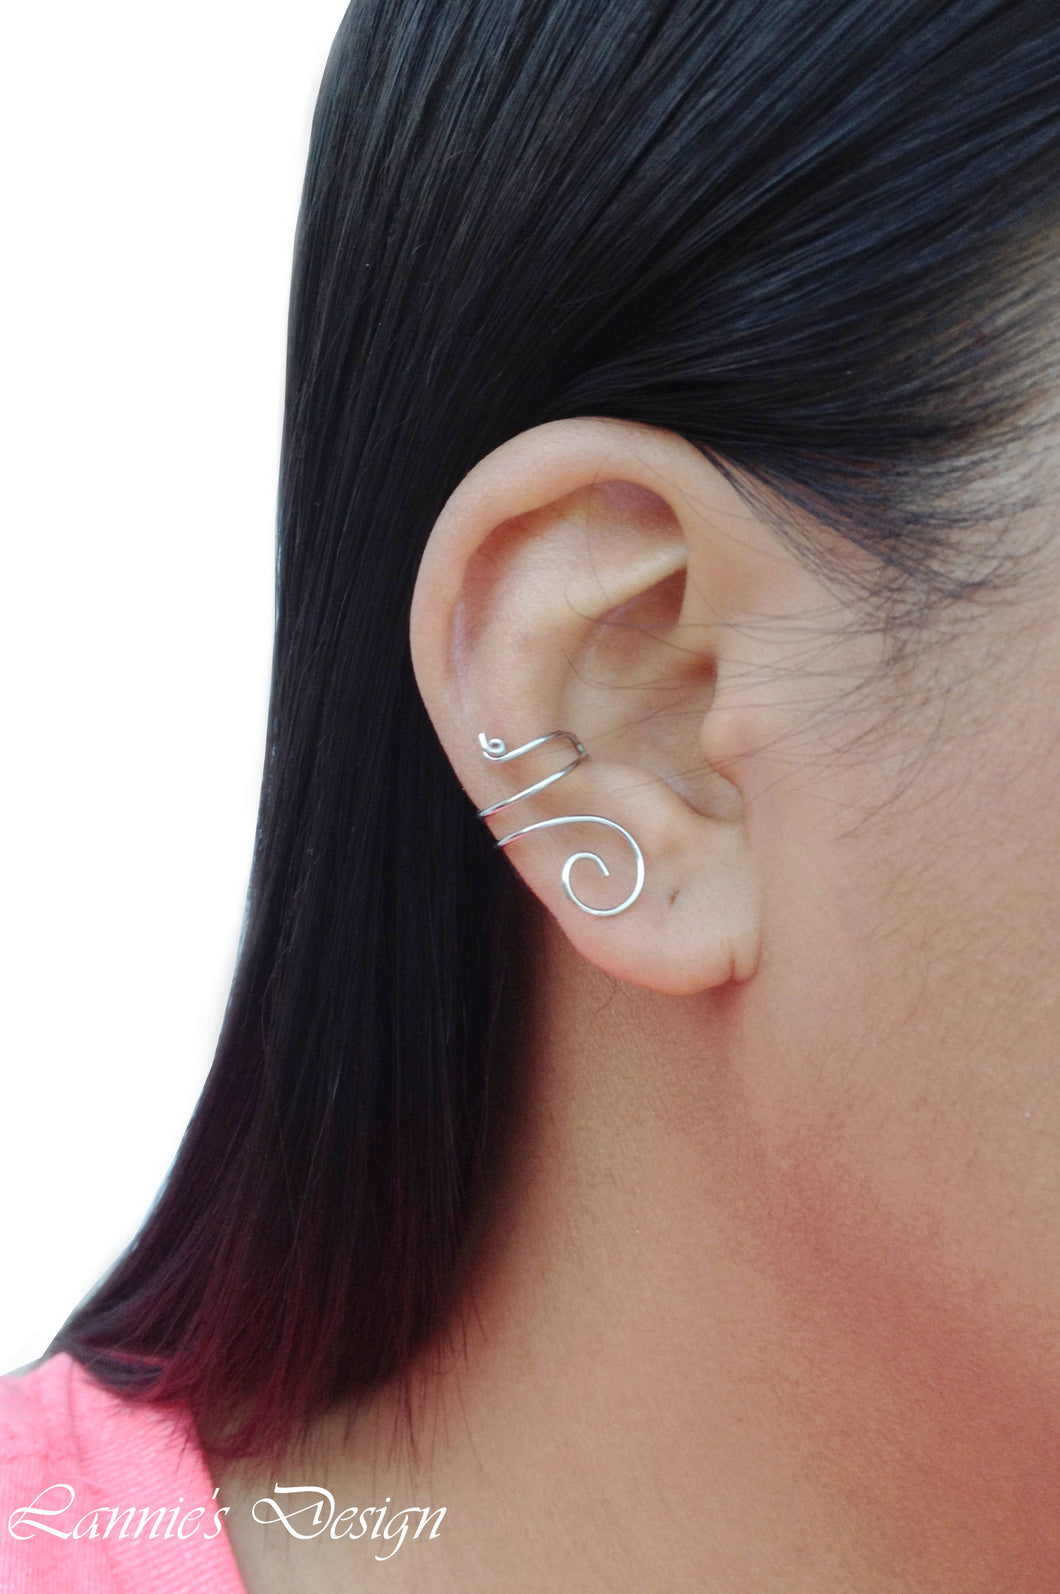 Silver Swirl Wire Ear Cuff No Piercing Conch Cartilage Earrings